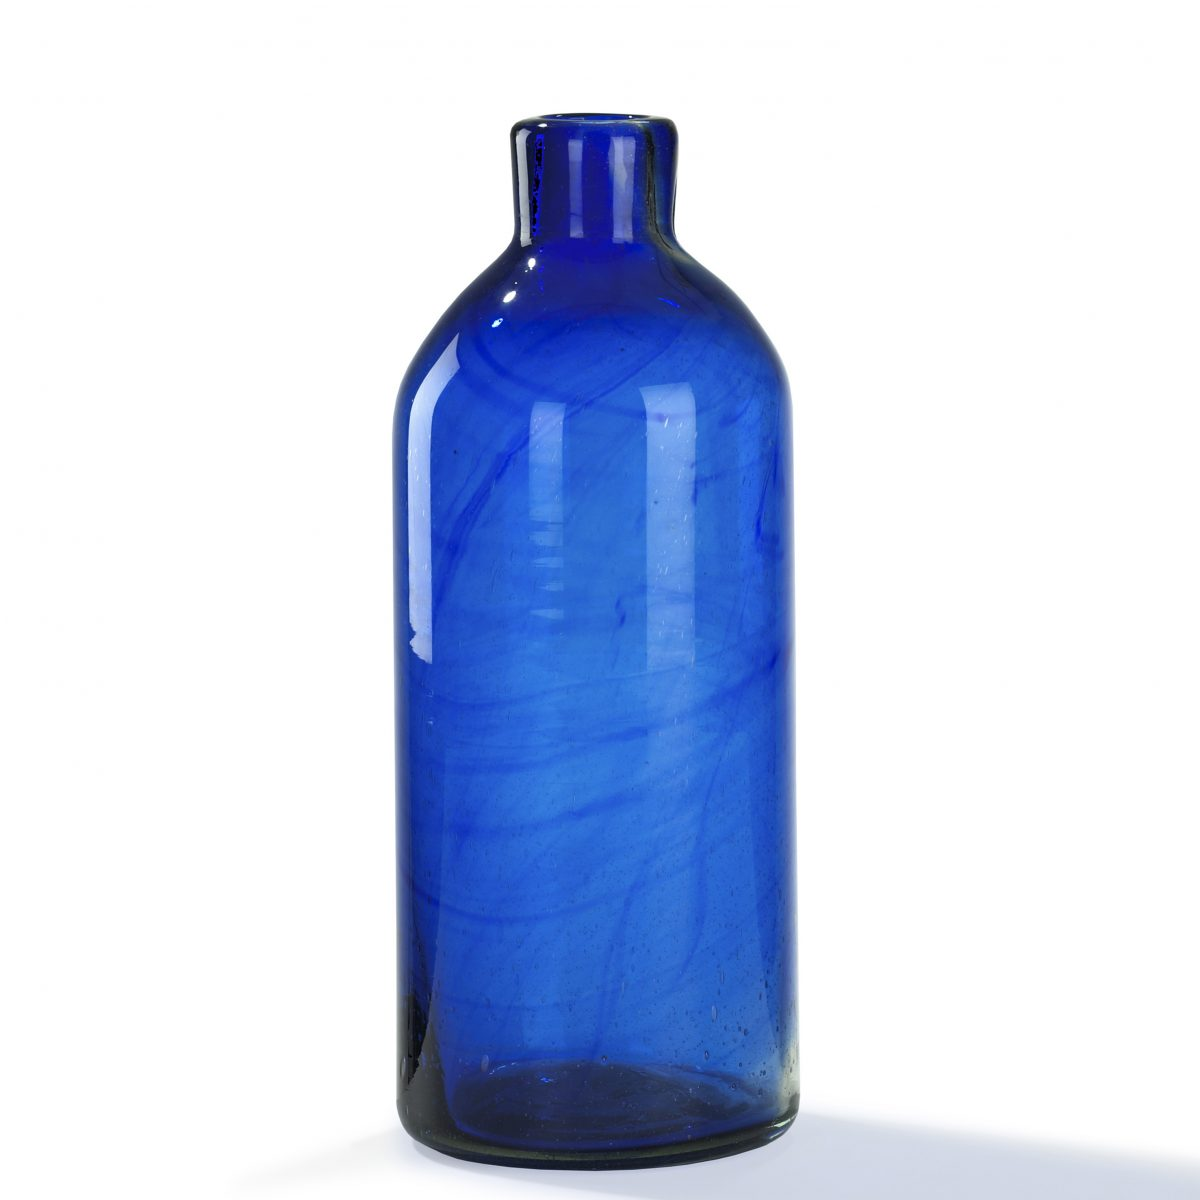 vase 40 blue Van Eijk Vander Lubbe Imperfect Design